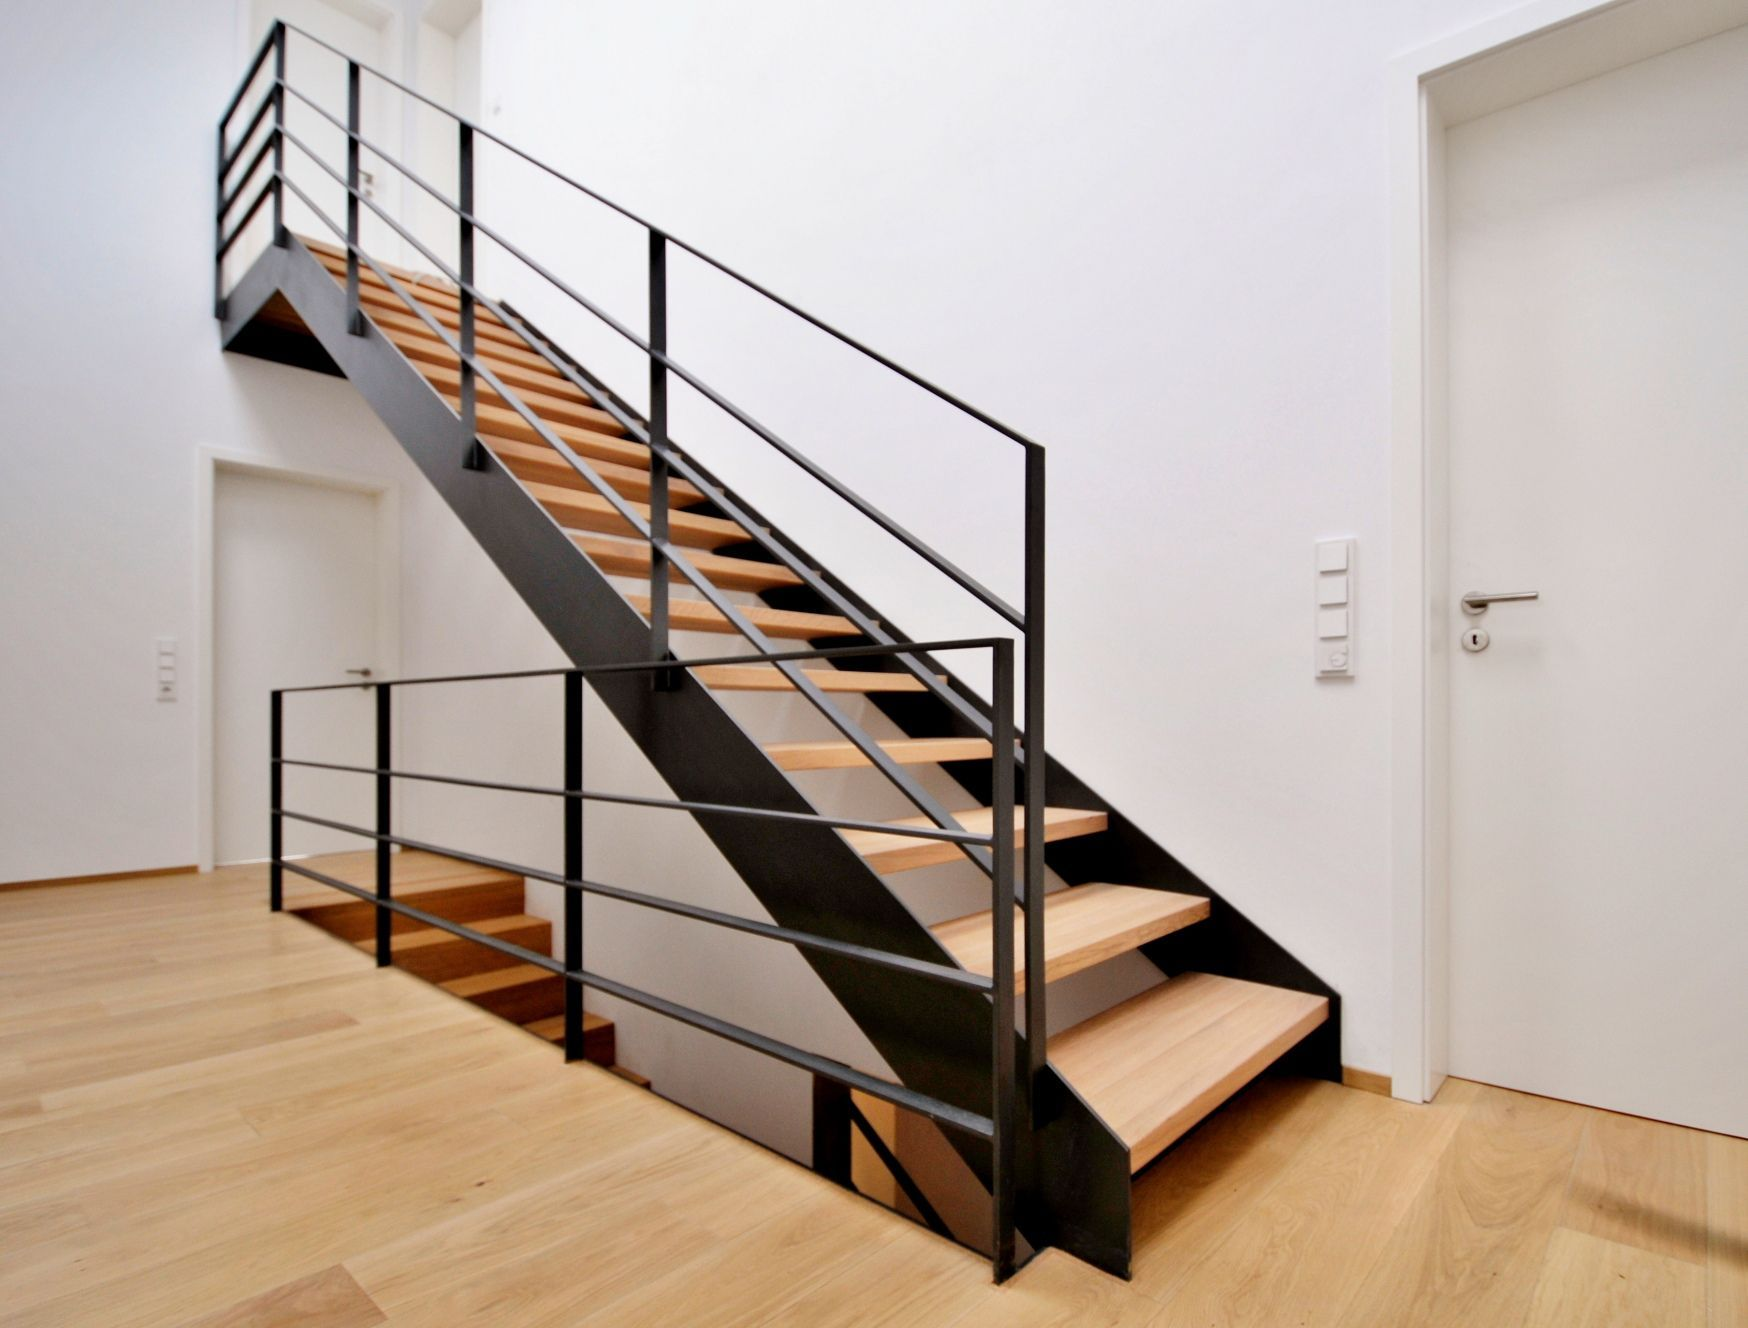 frammelsberger treppen in 2019 steel stairs staircase railings iron stair. Black Bedroom Furniture Sets. Home Design Ideas